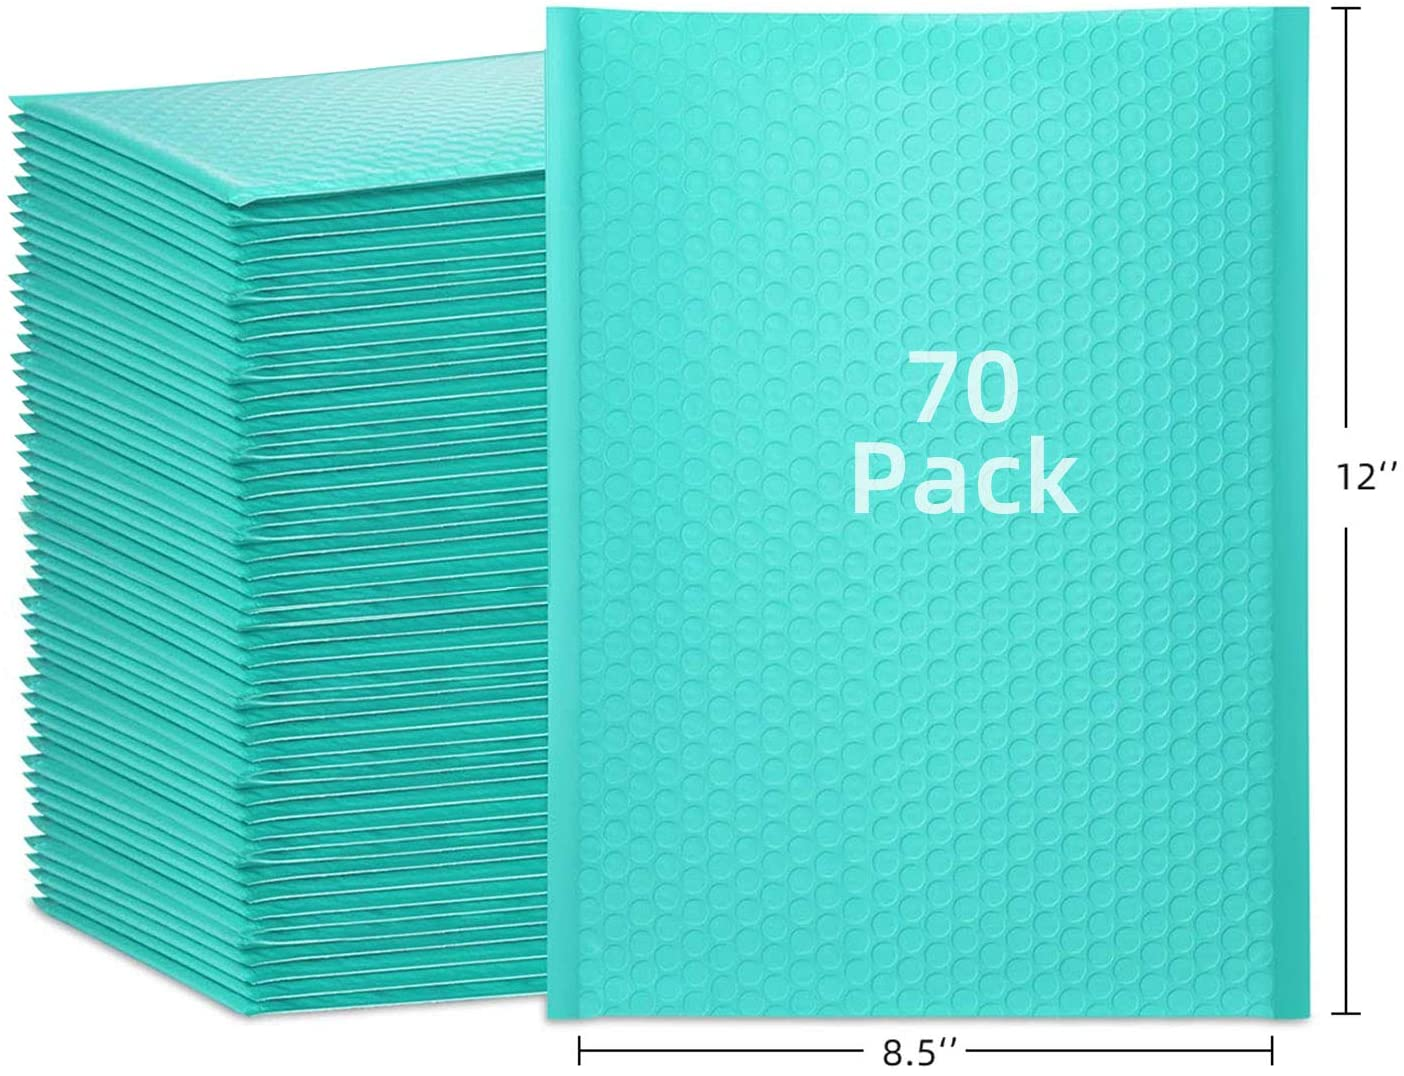 LabelChoice 8.5 x 12 Inch Teal Poly Bubble Mailers #2 Padded Envelopes Bubble Envelope Cushion Envelopes Pack of 70